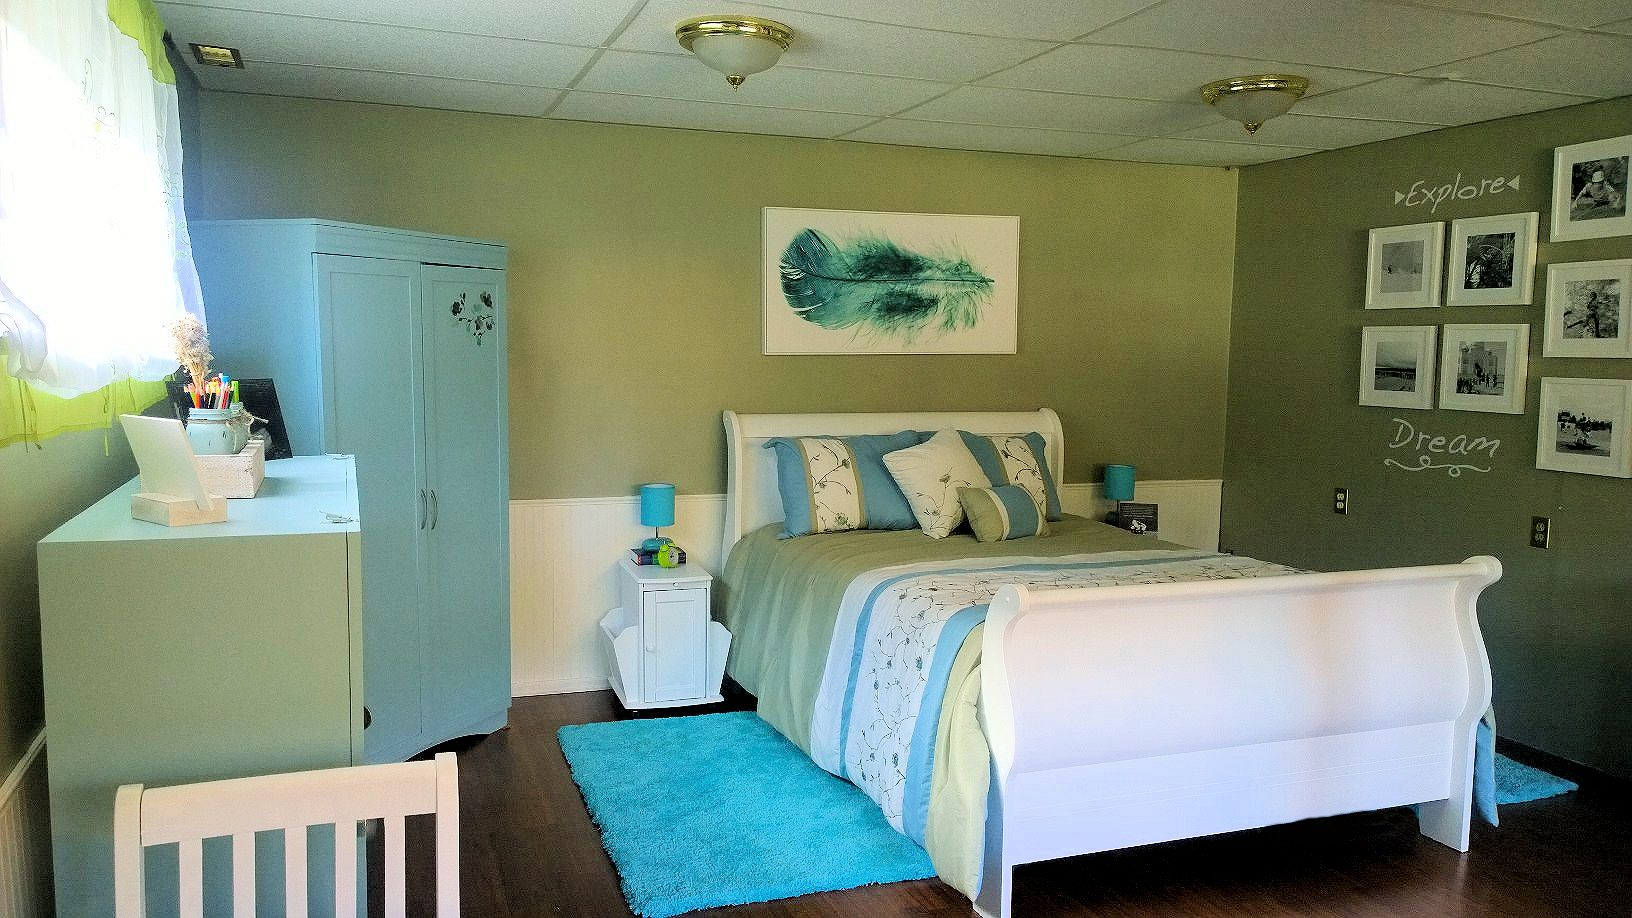 Room makeover project after photo turning a teen bedroom into a craft room and spare bedroom